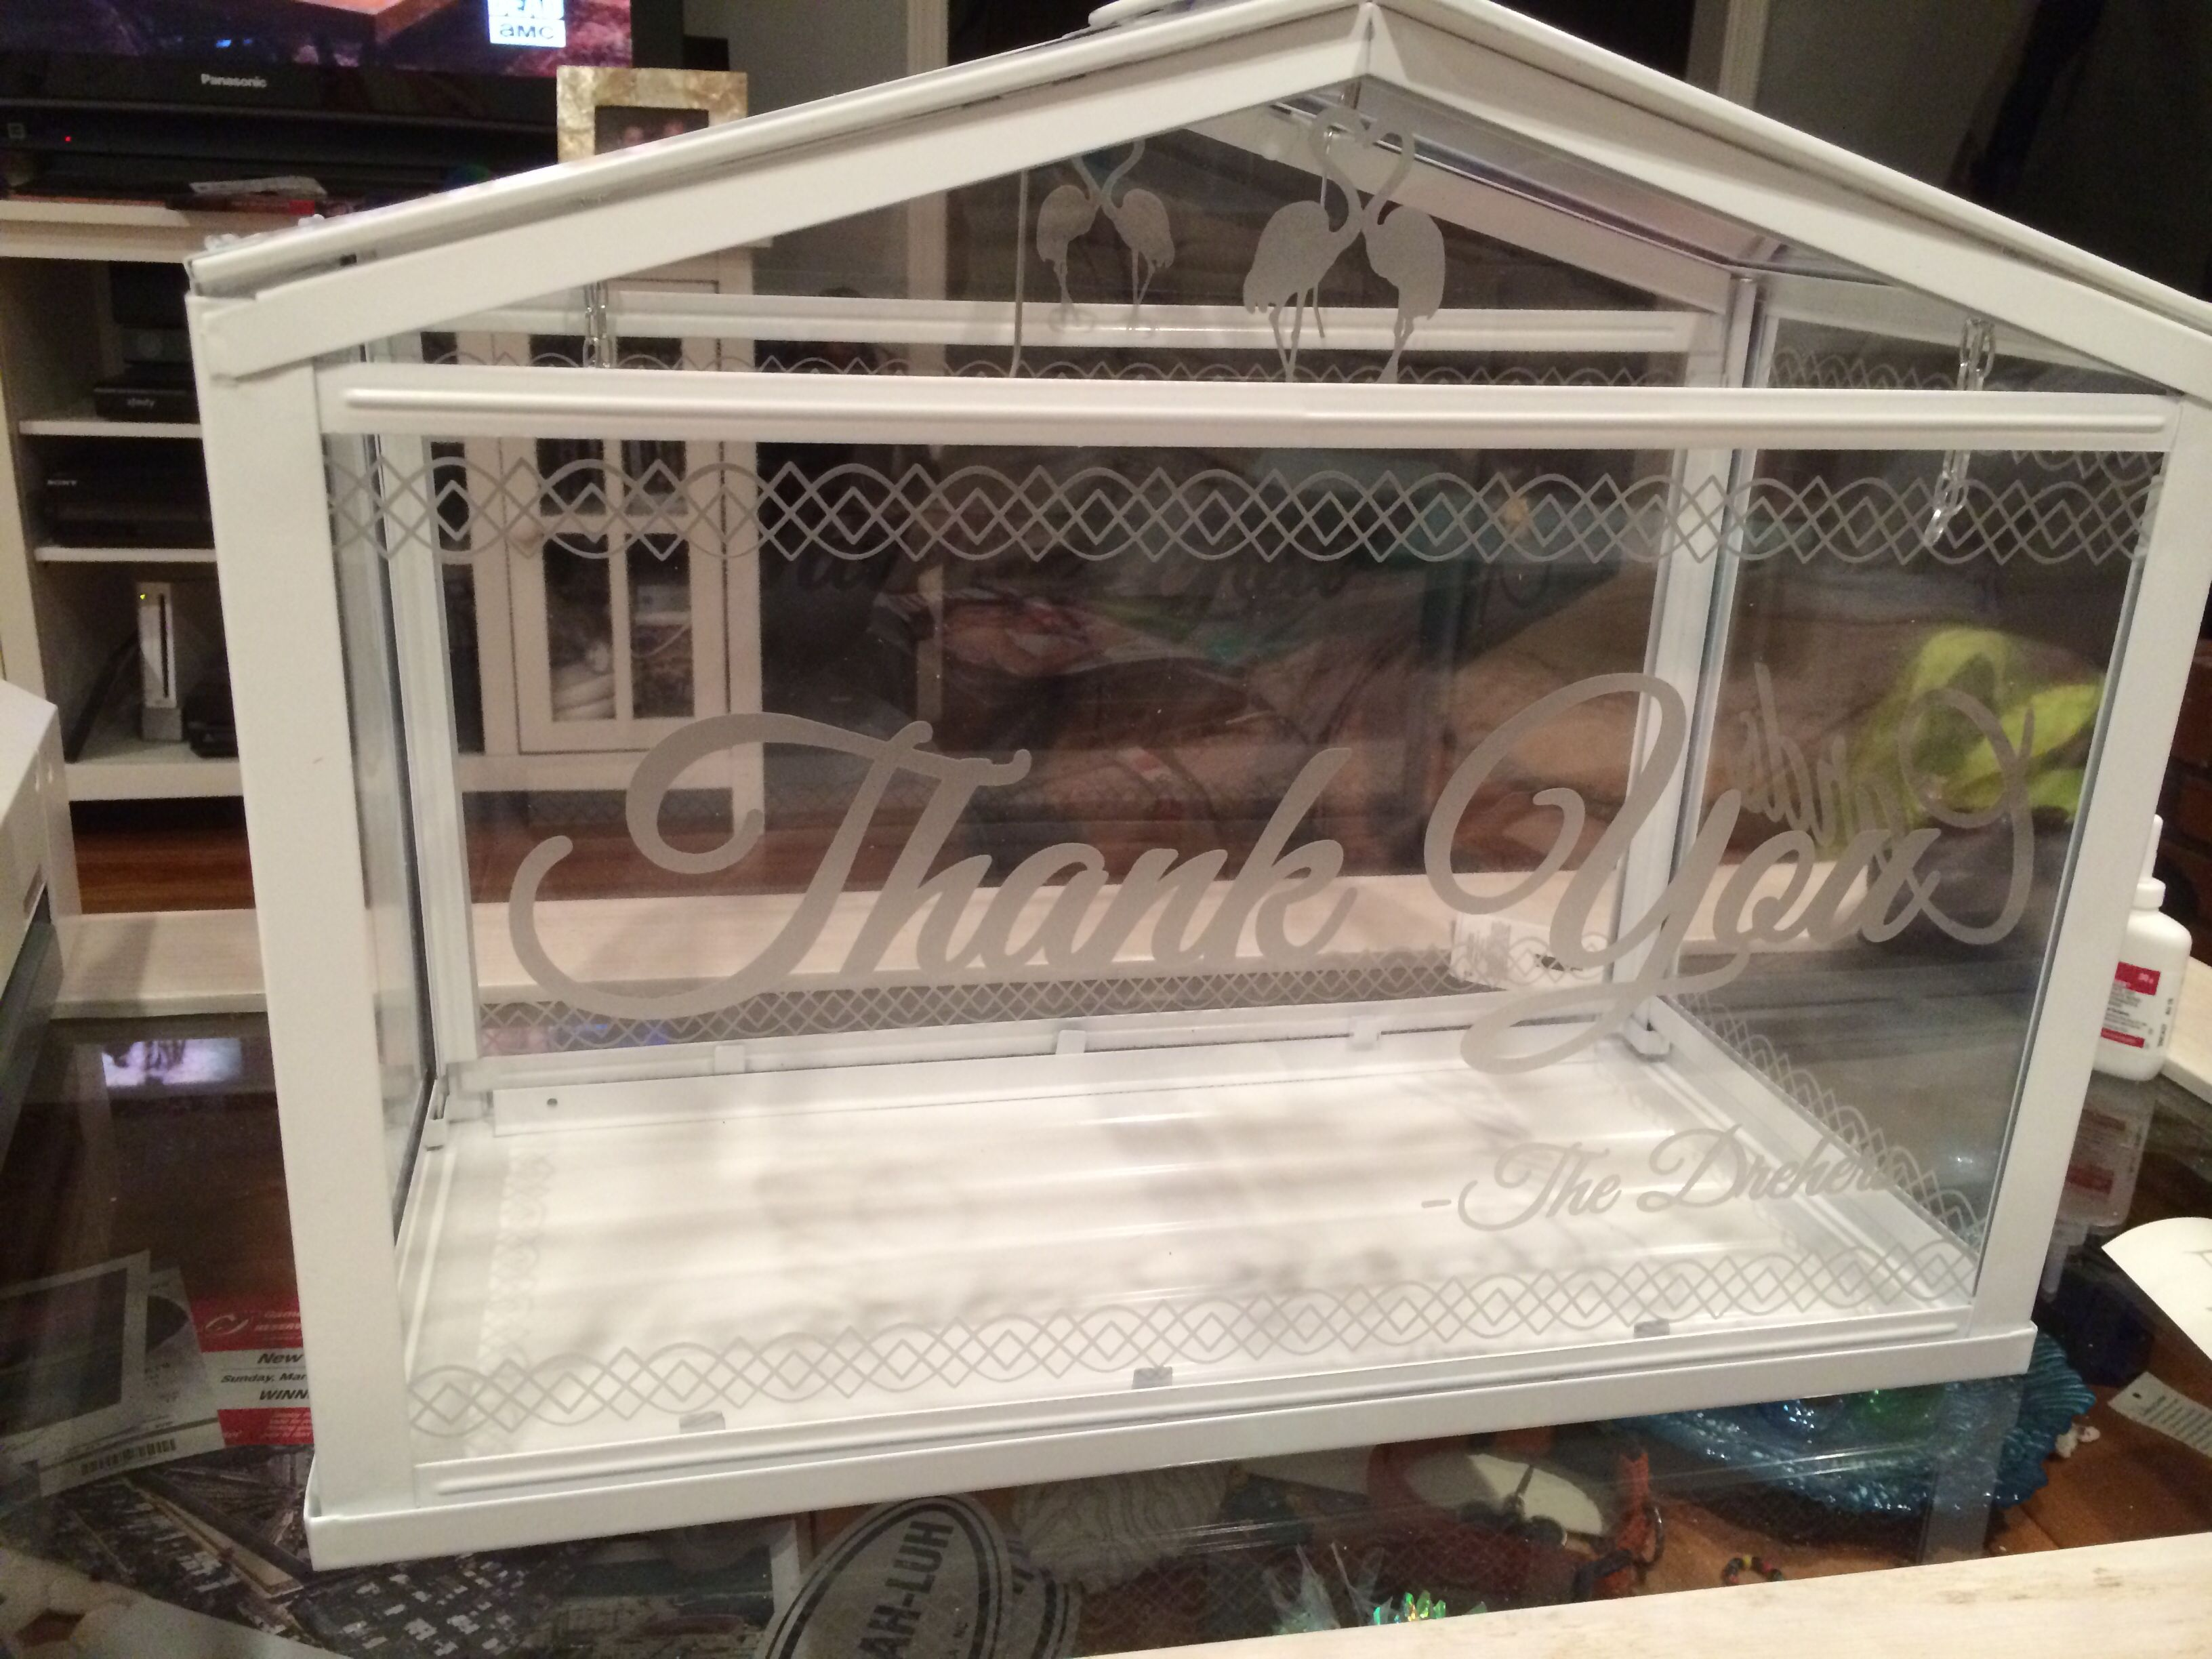 IKEA Socker Greenhouse As The Card Box. Used Silhouette Cameo With Silver  Etched Vinyl To